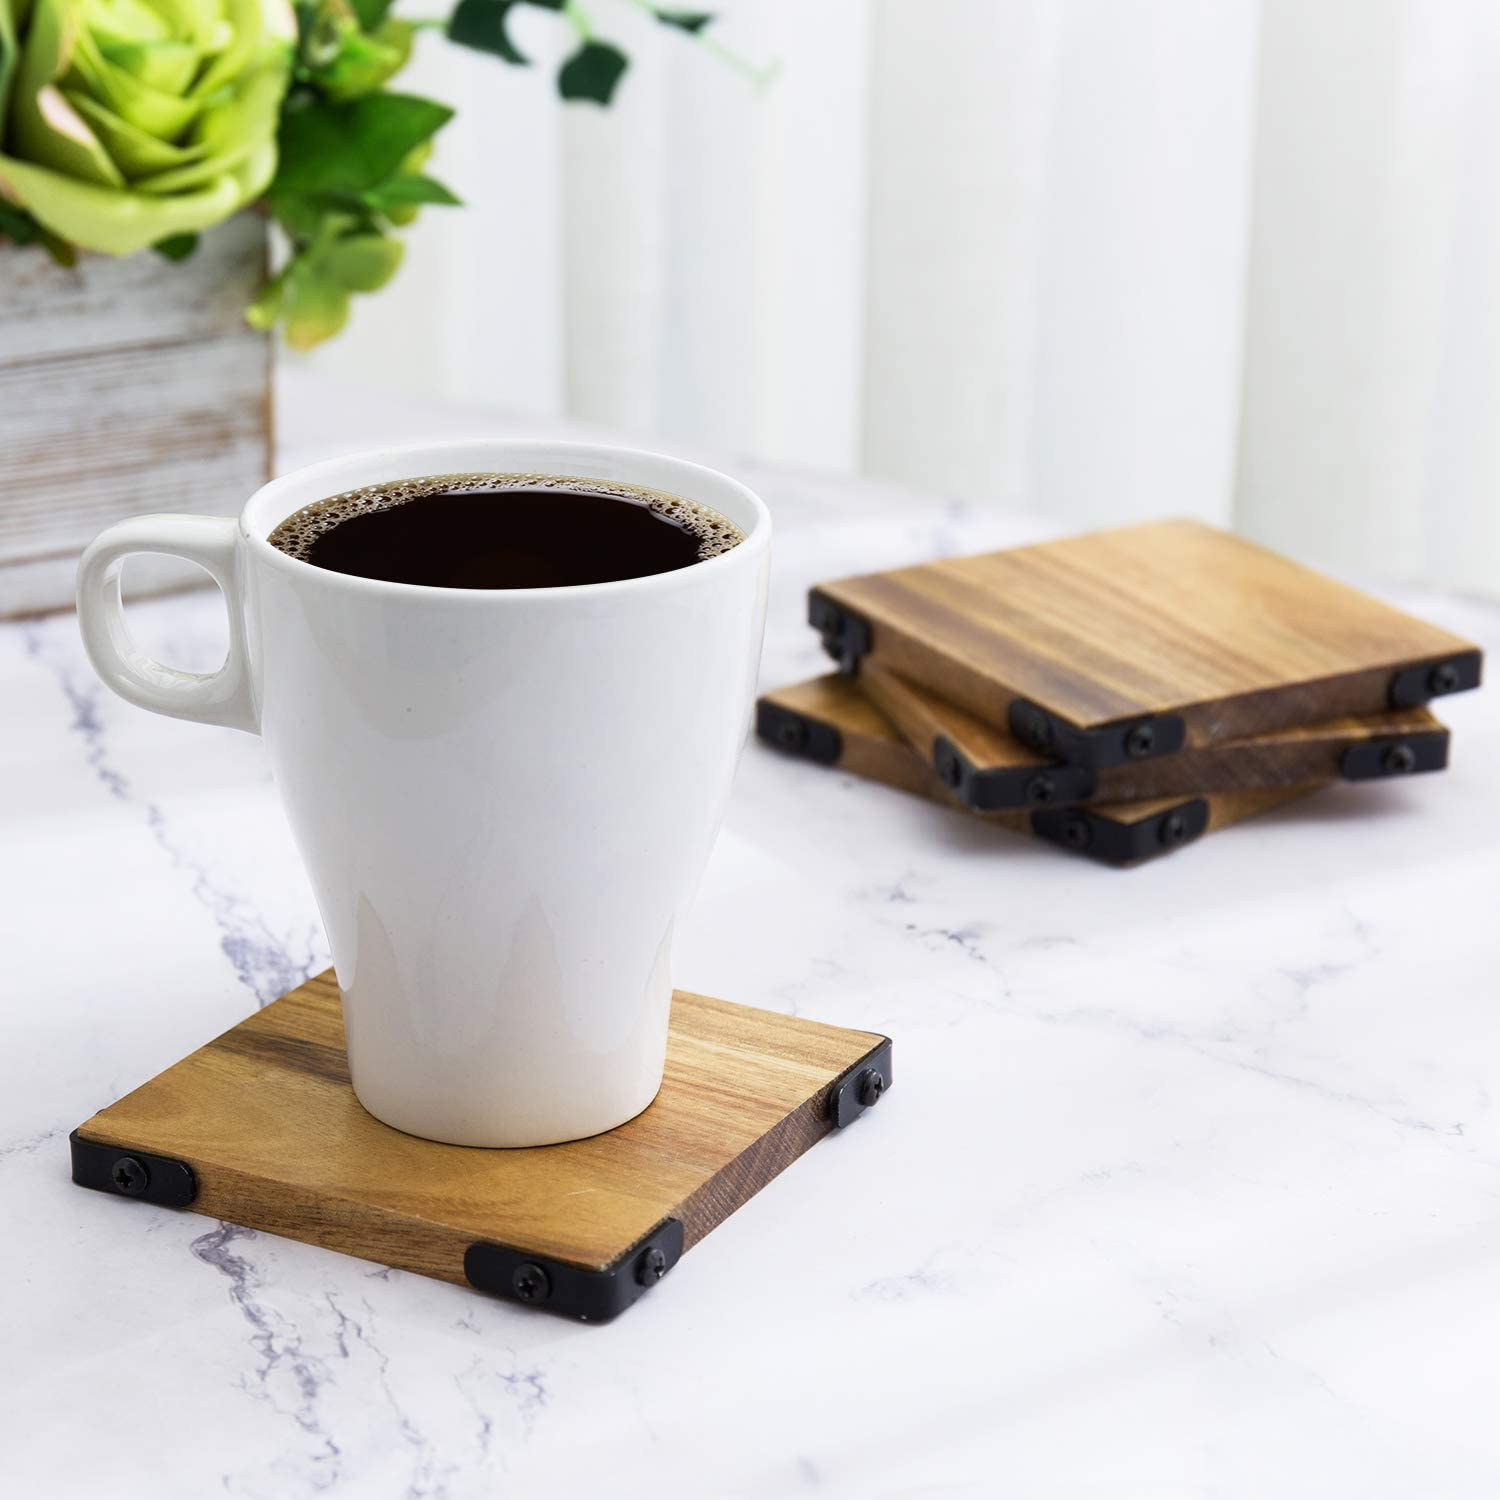 MyGift Premium Acacia Solid Wood Square Beverage Coasters with Matte Black Metal Corners for Hot & Cold Drinks, Set of 4